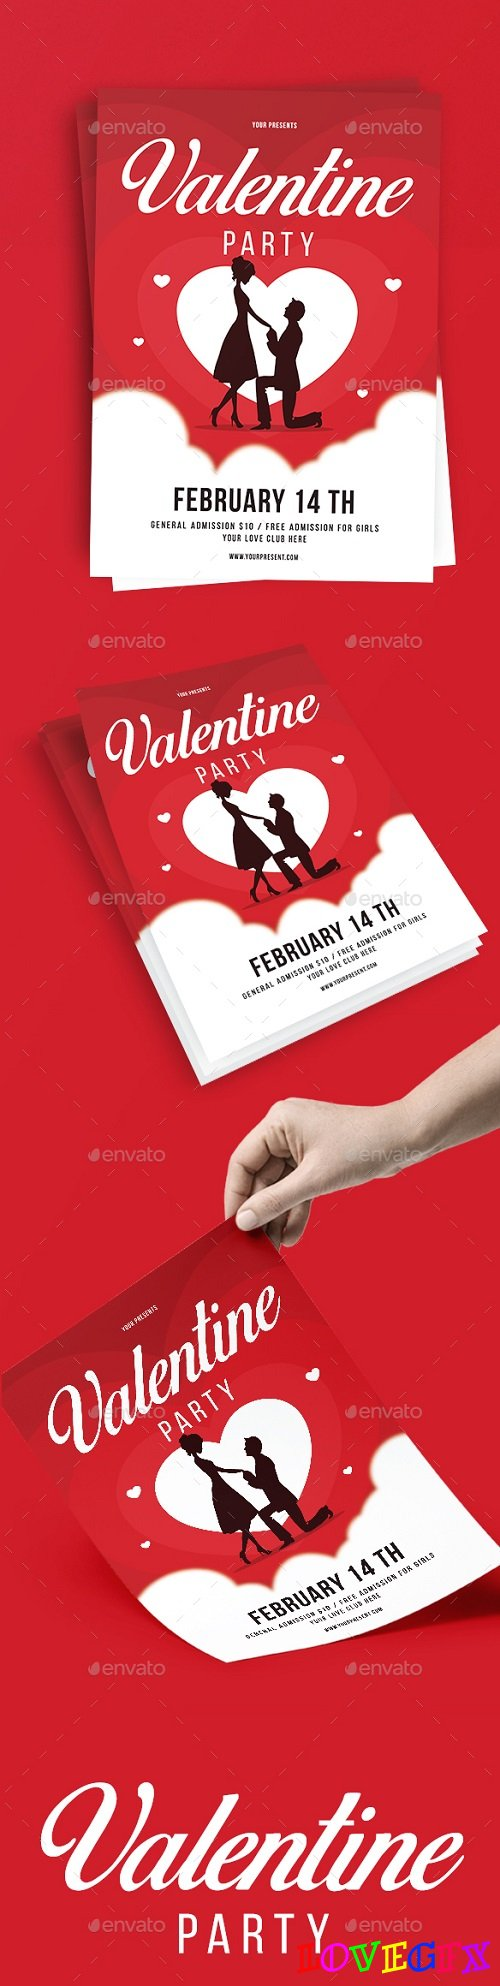 Valentine day party 21266850